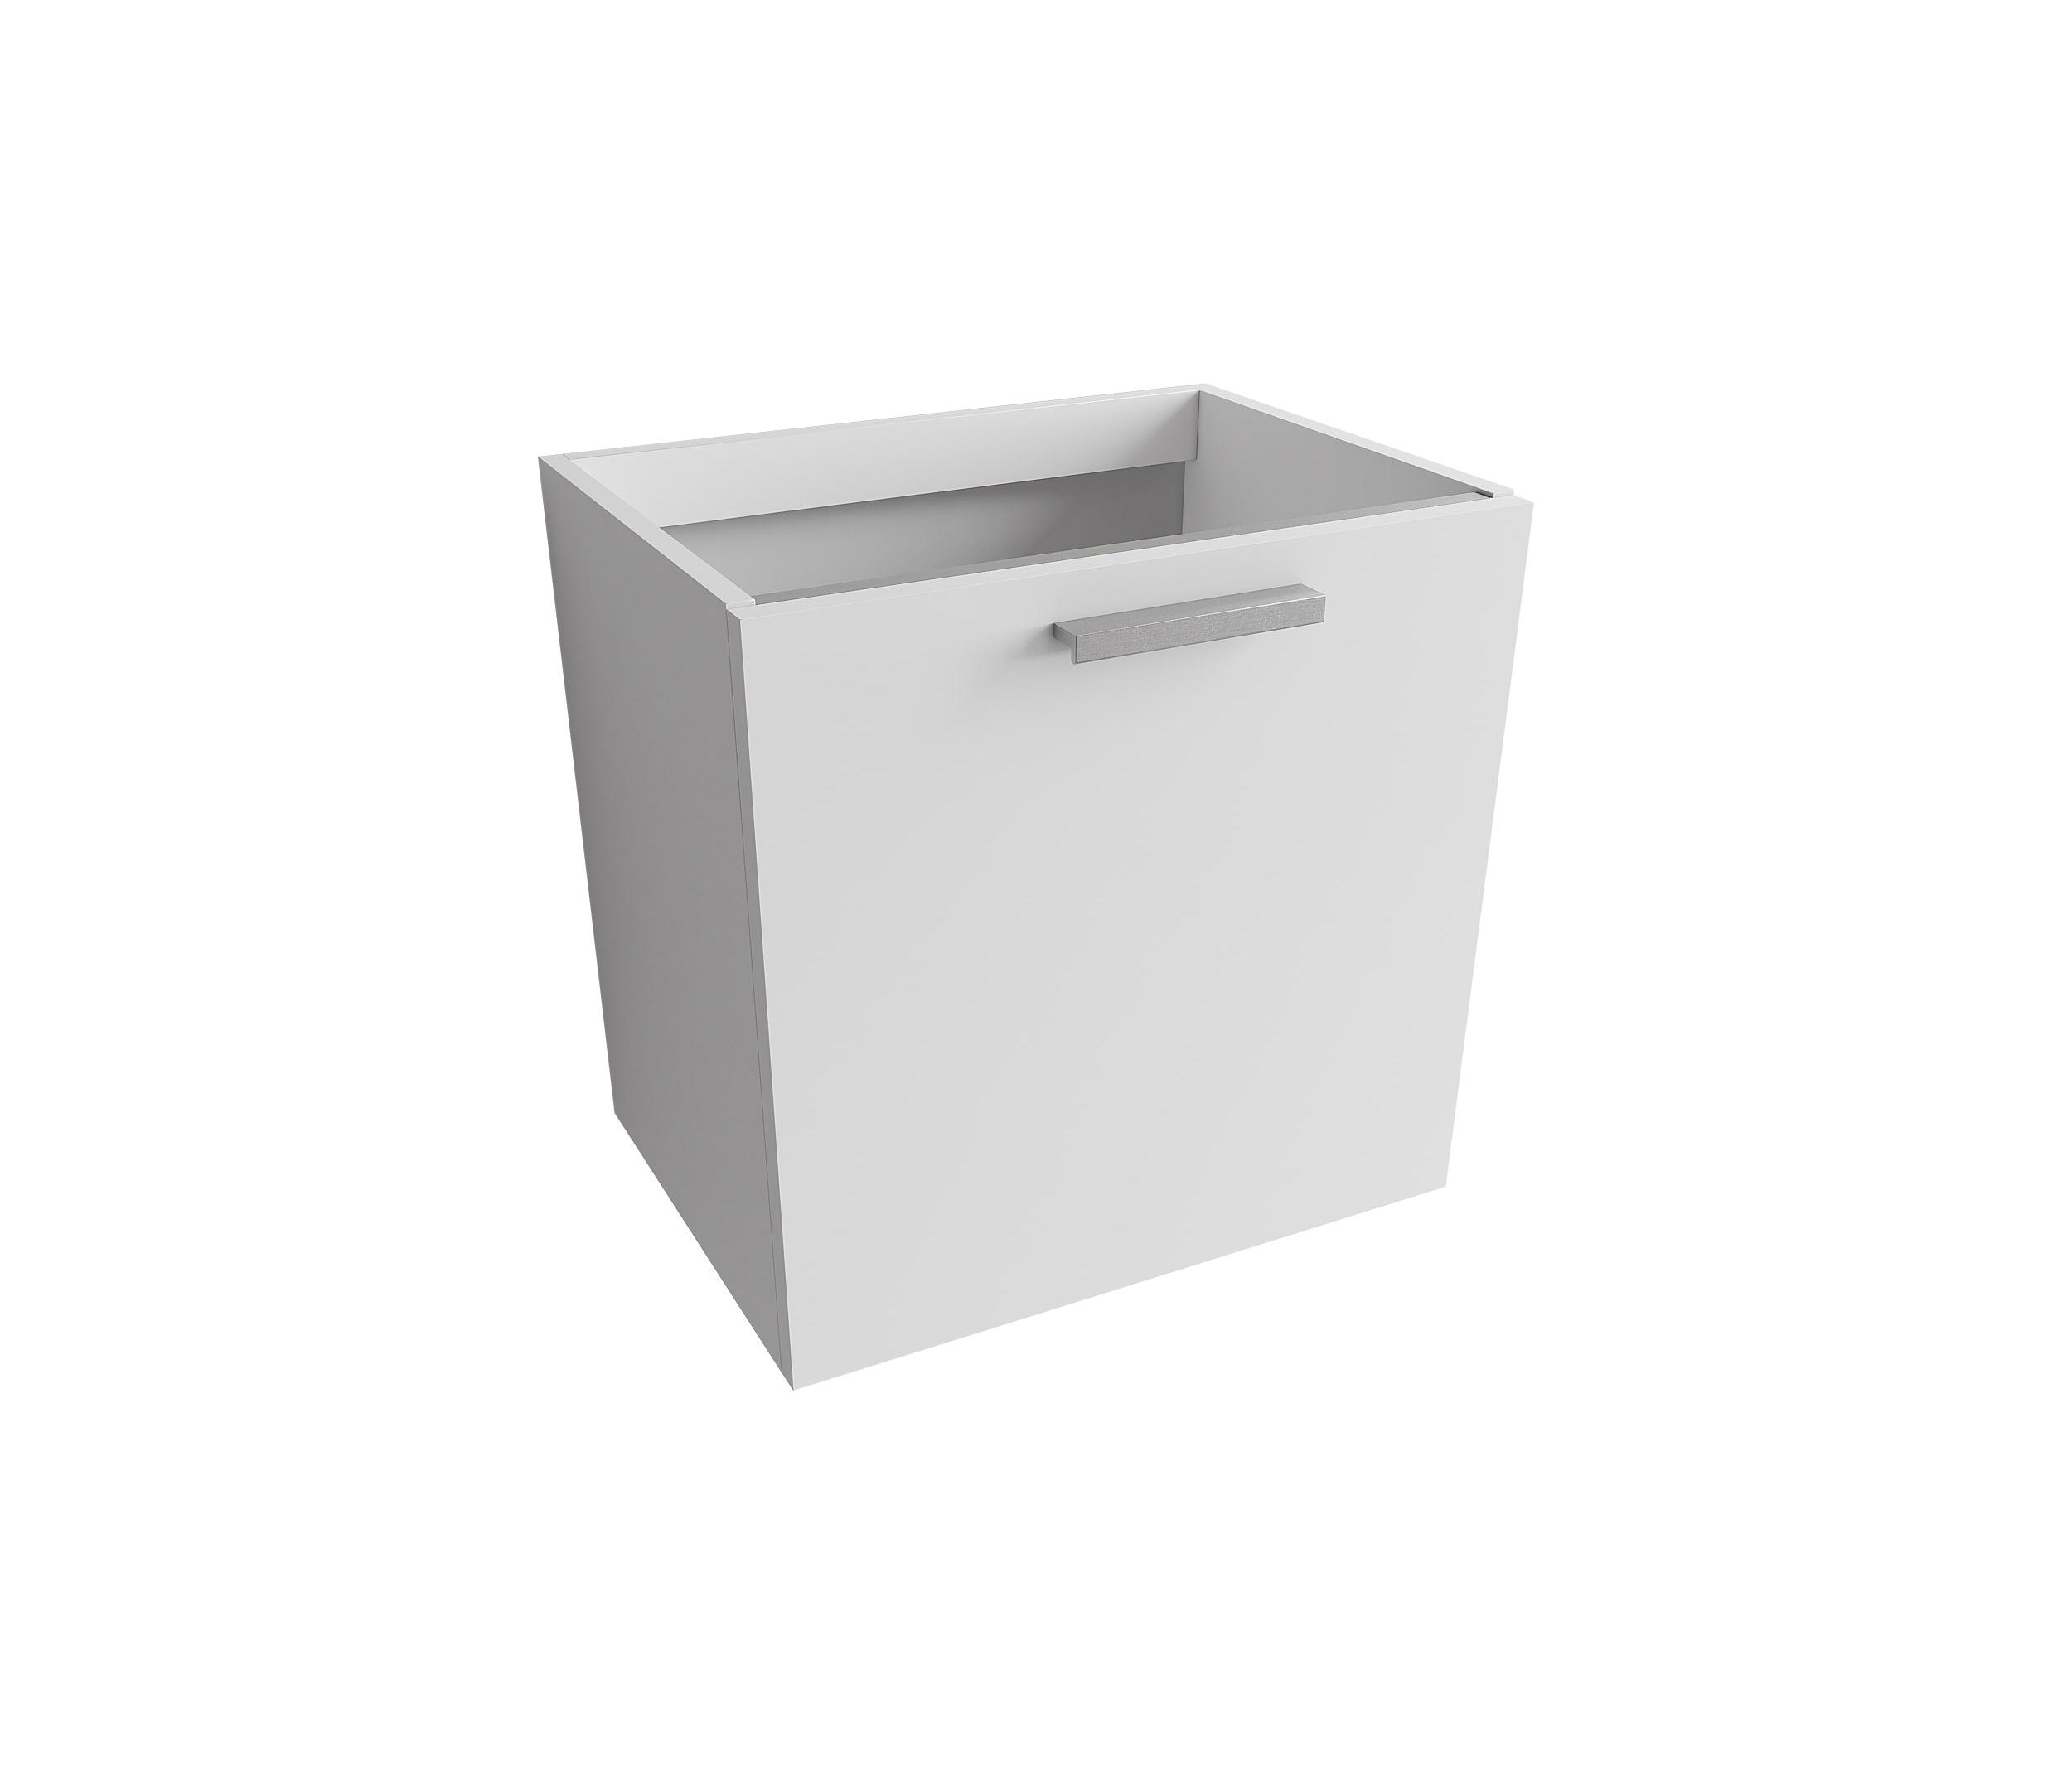 Waschtisch Duravit Vero Air Duravit Vero Fabulous Vero Ceramic Rectangular Vessel Bathroom Sink